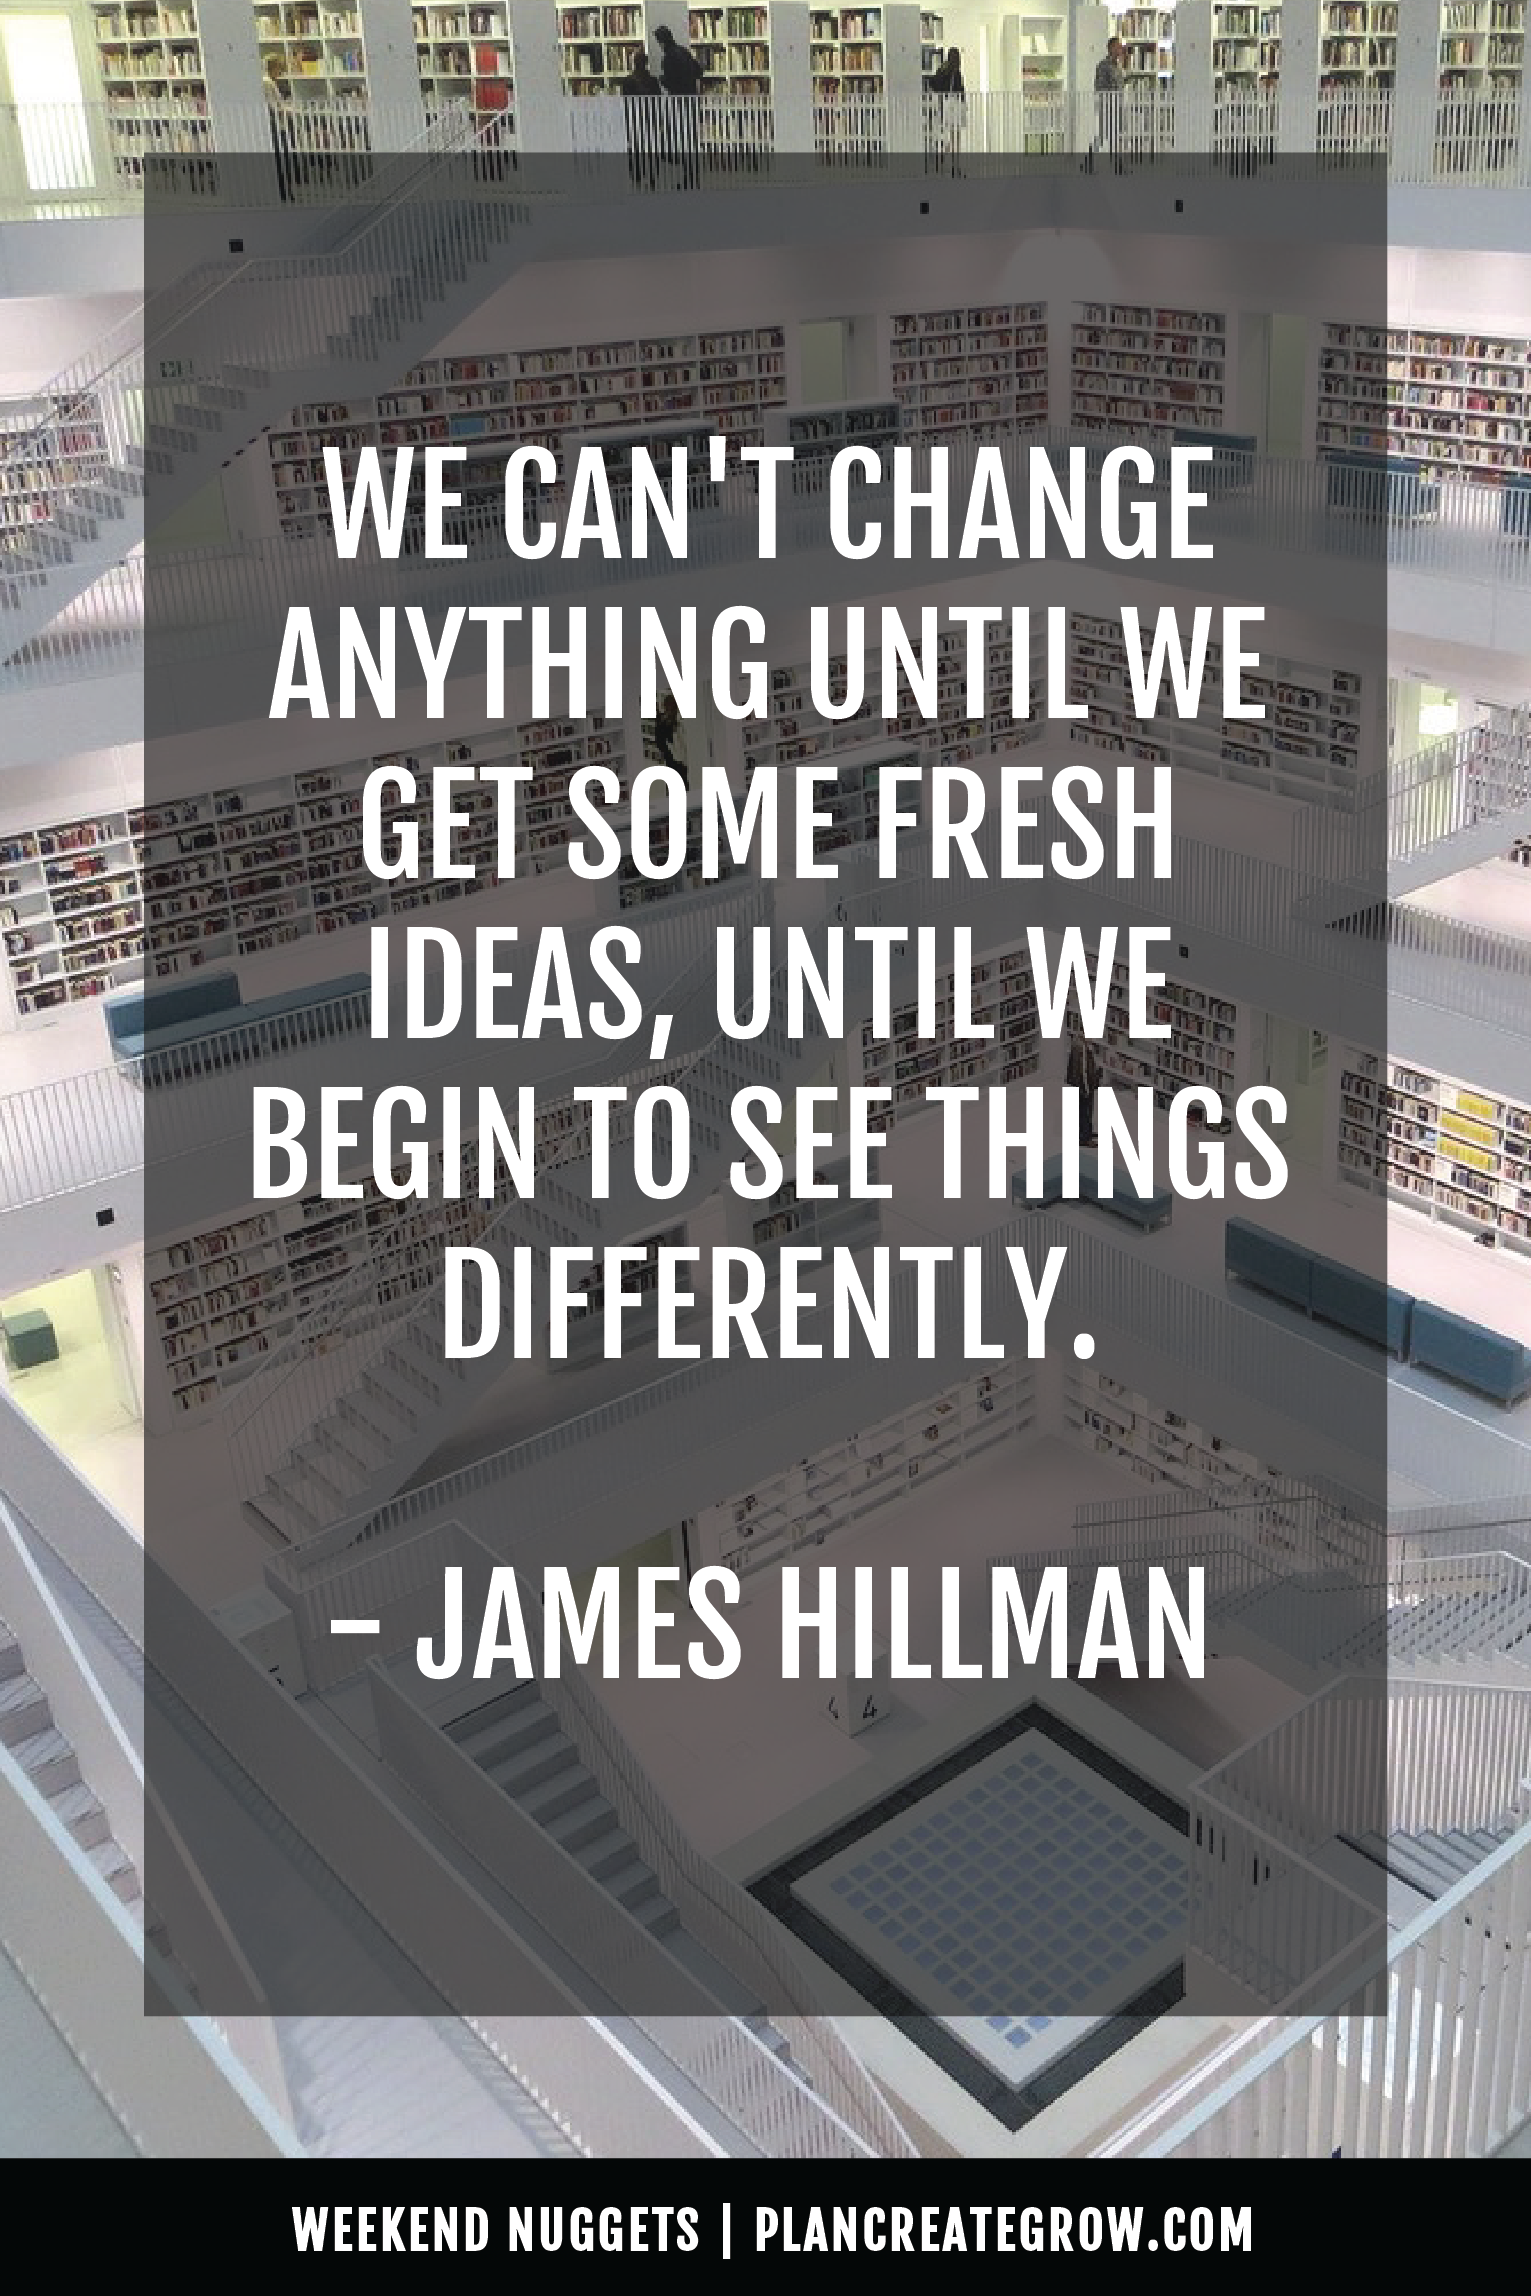 """""""We can't change anything until we get some fresh ideas, until we begin to see things differently."""" - James Hillman  This image forms part of a series called Weekend Nuggets - a collection of quotes and ideas curated to delight and inspire - shared each weekend. For more, visit plancreategrow.com/weekend-nuggets."""